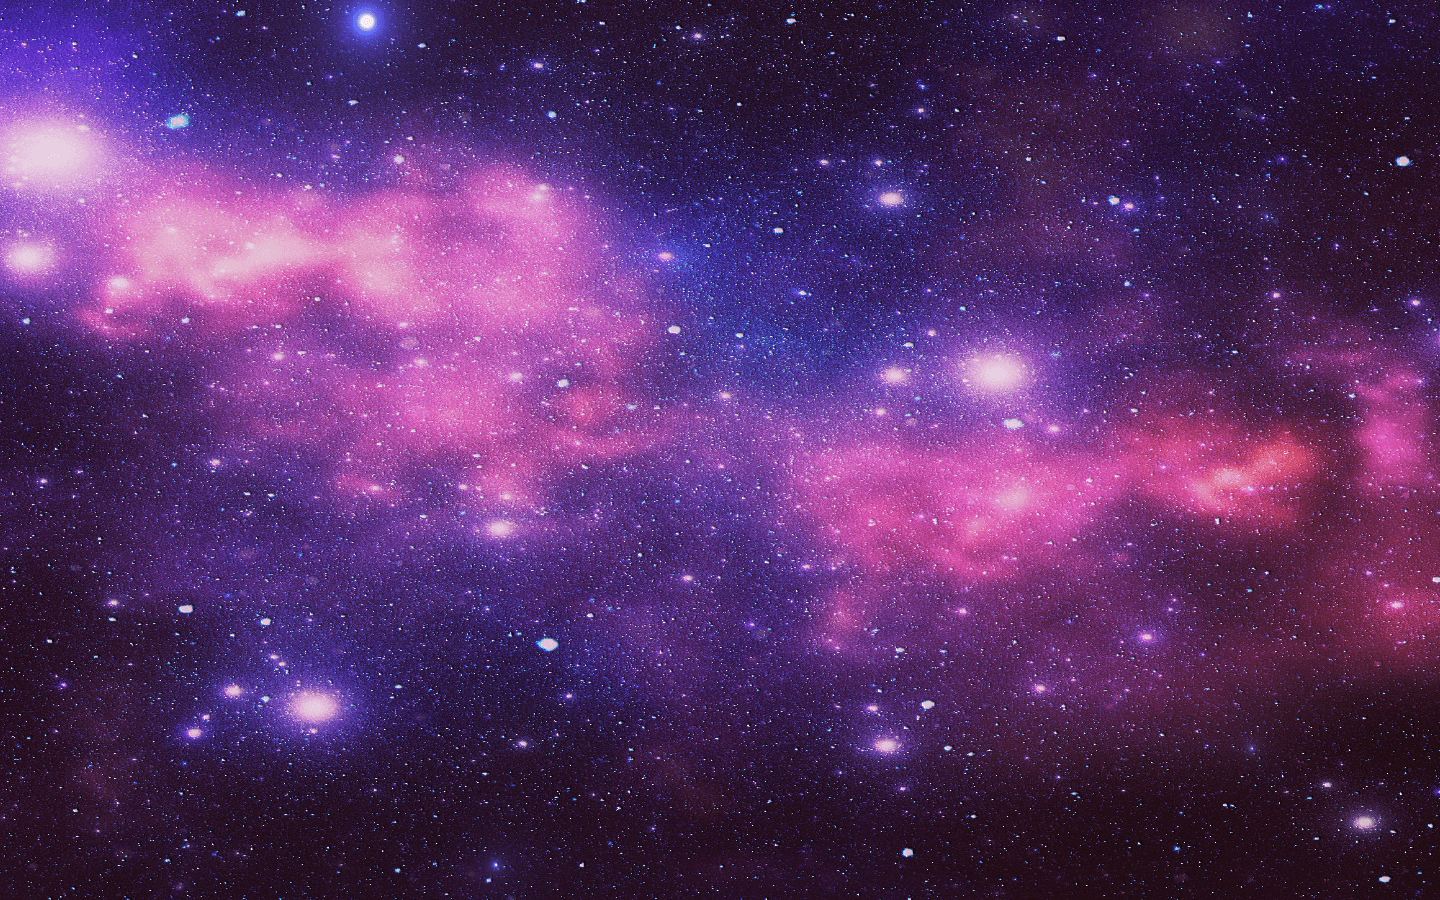 Galaxy Tumblr Backgrounds Hd Wallpaper Cave